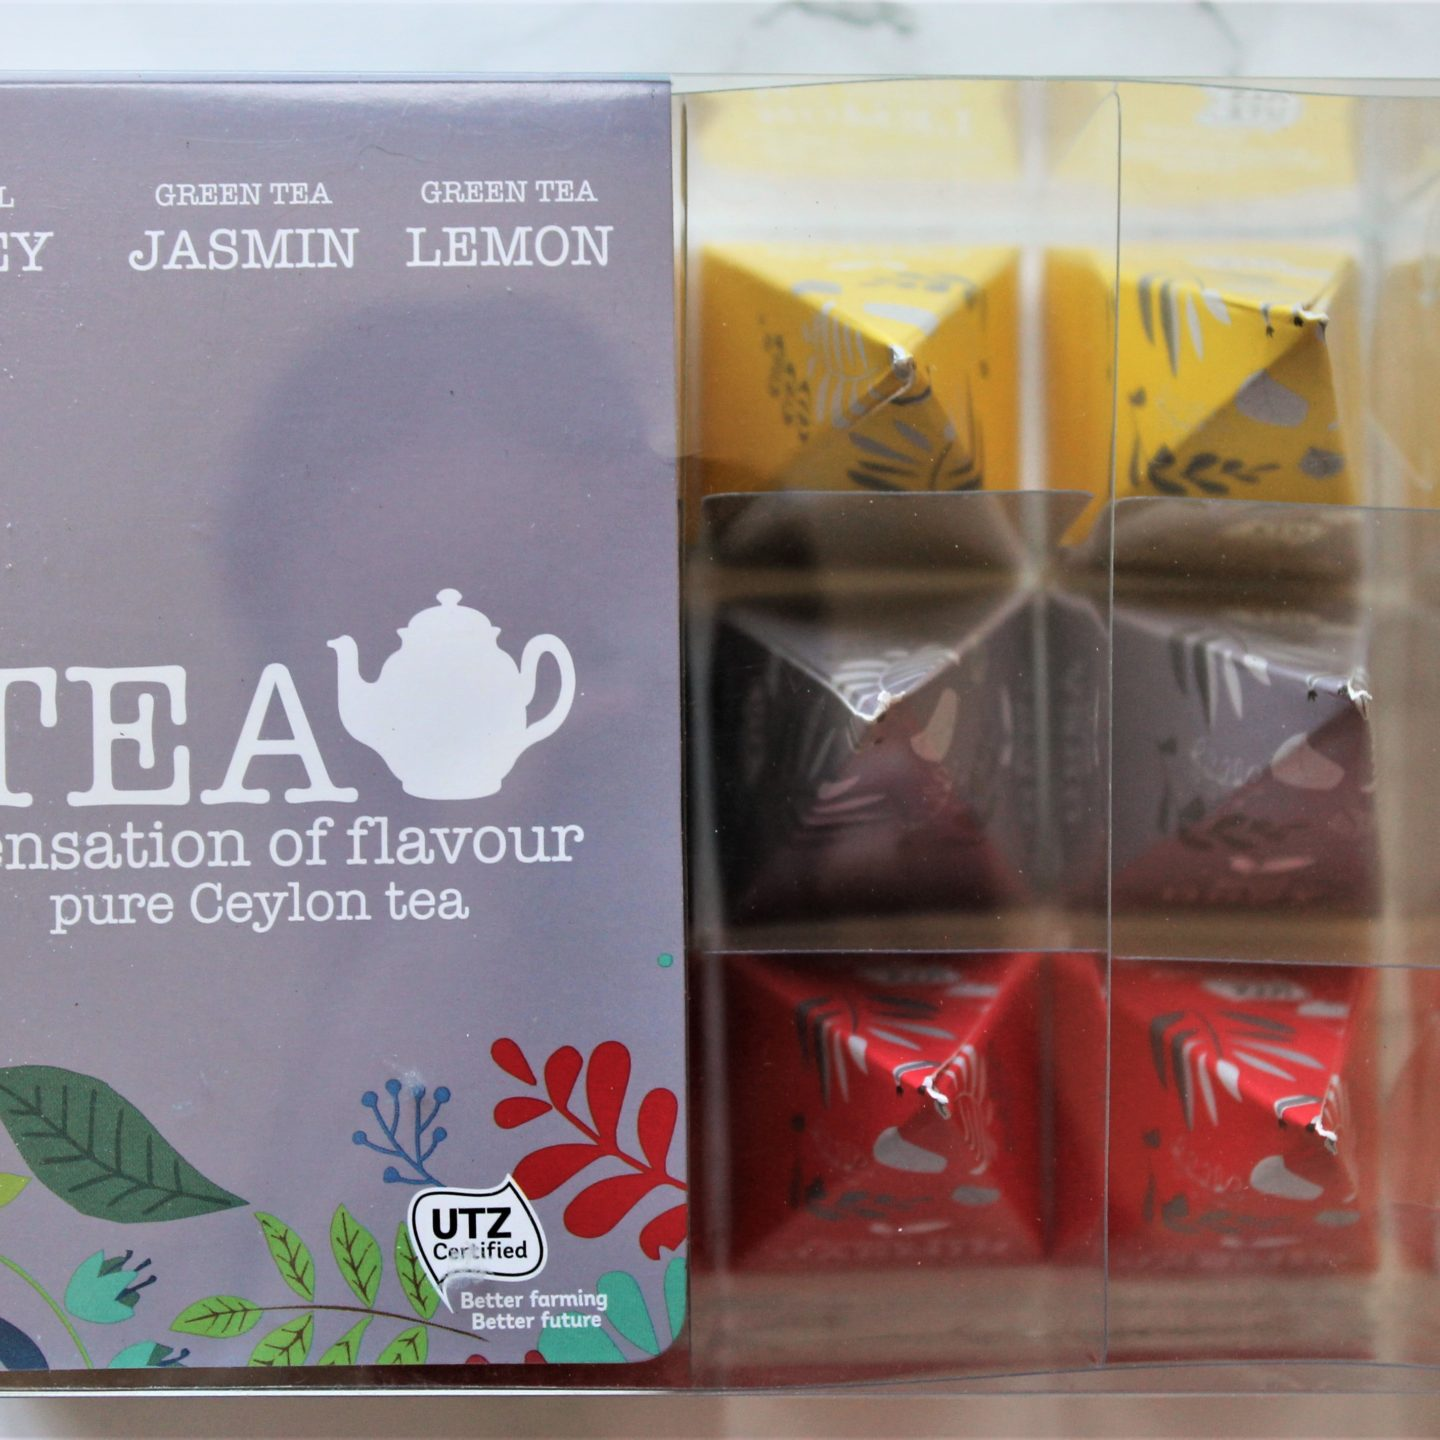 Tea Sensation of Flavour by Becky's from Holland